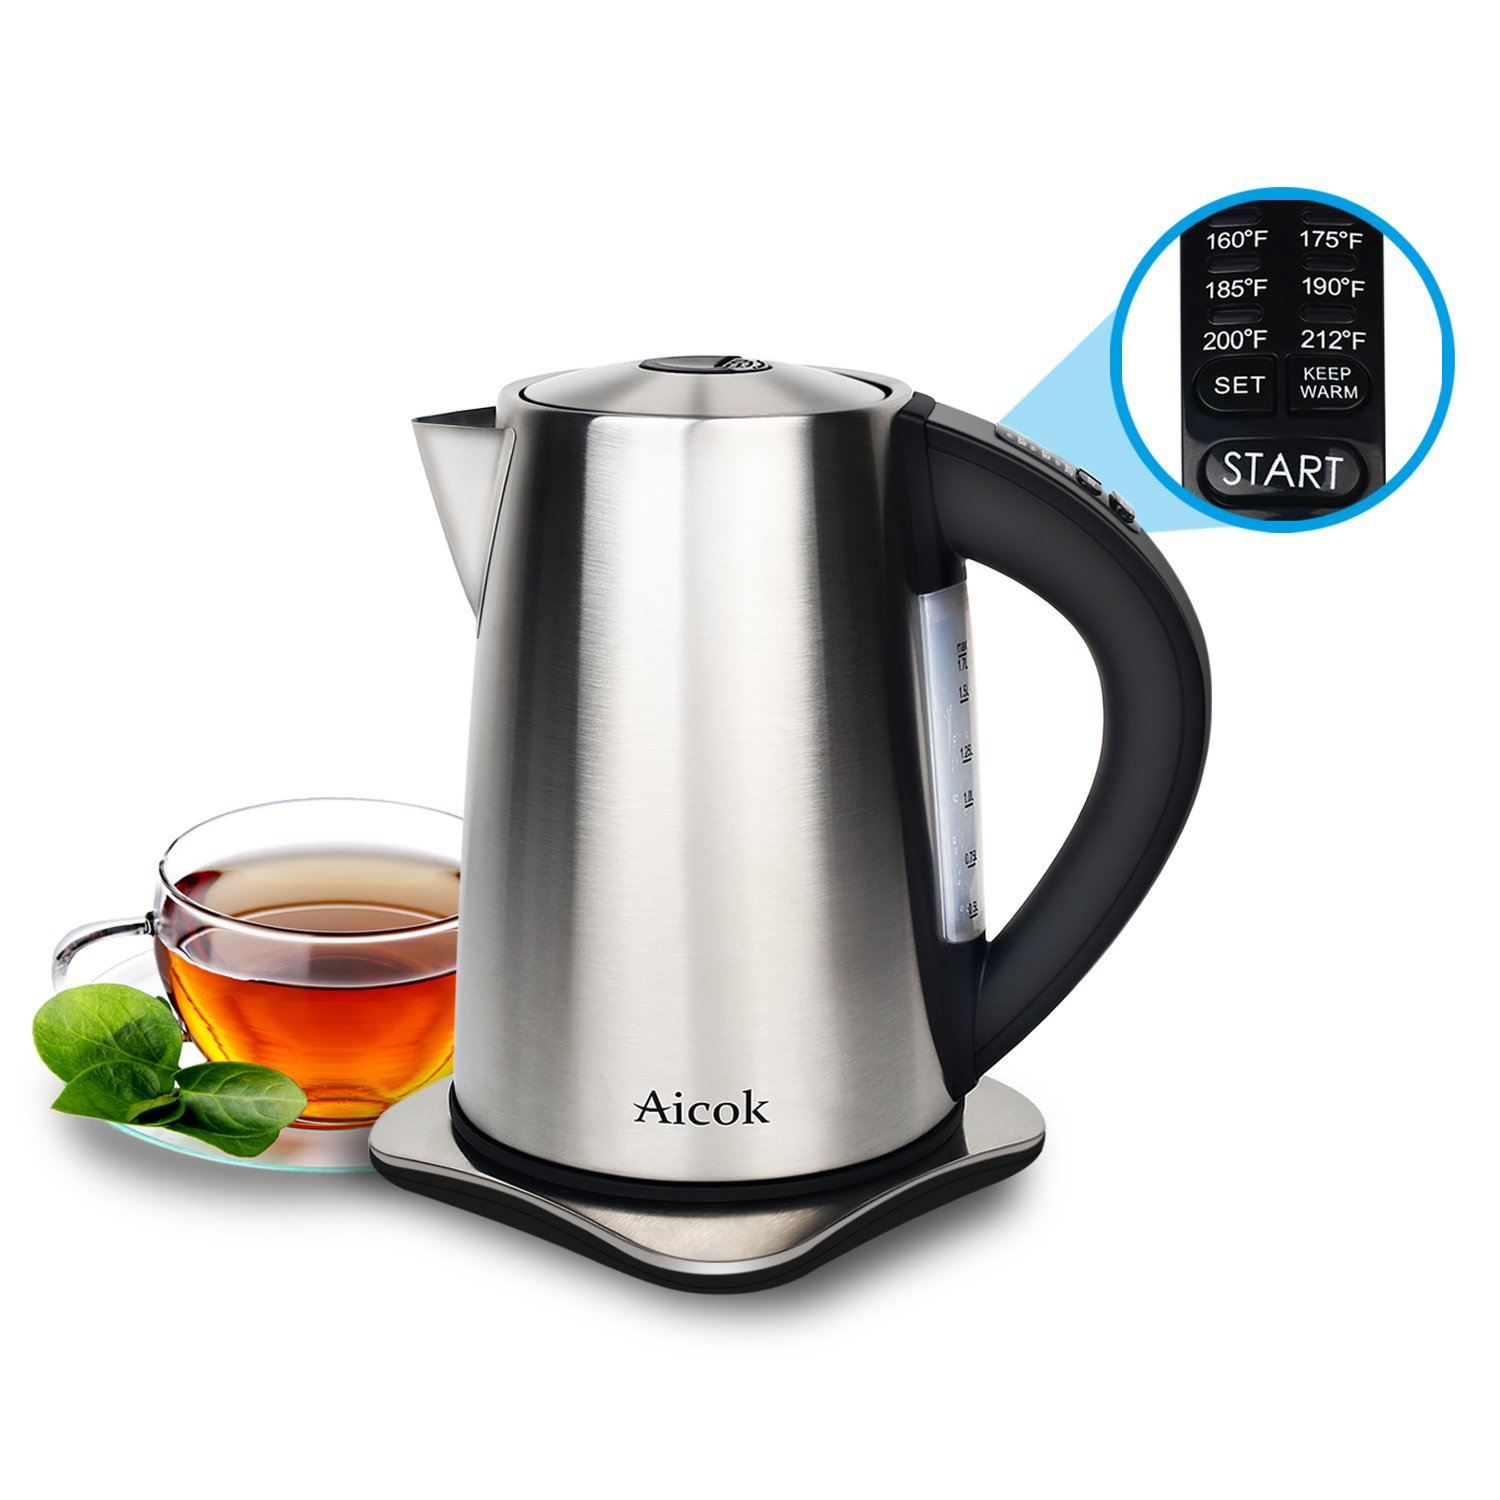 Aicok 1.7-Liter Stainless Steel Cordless Water Kettle